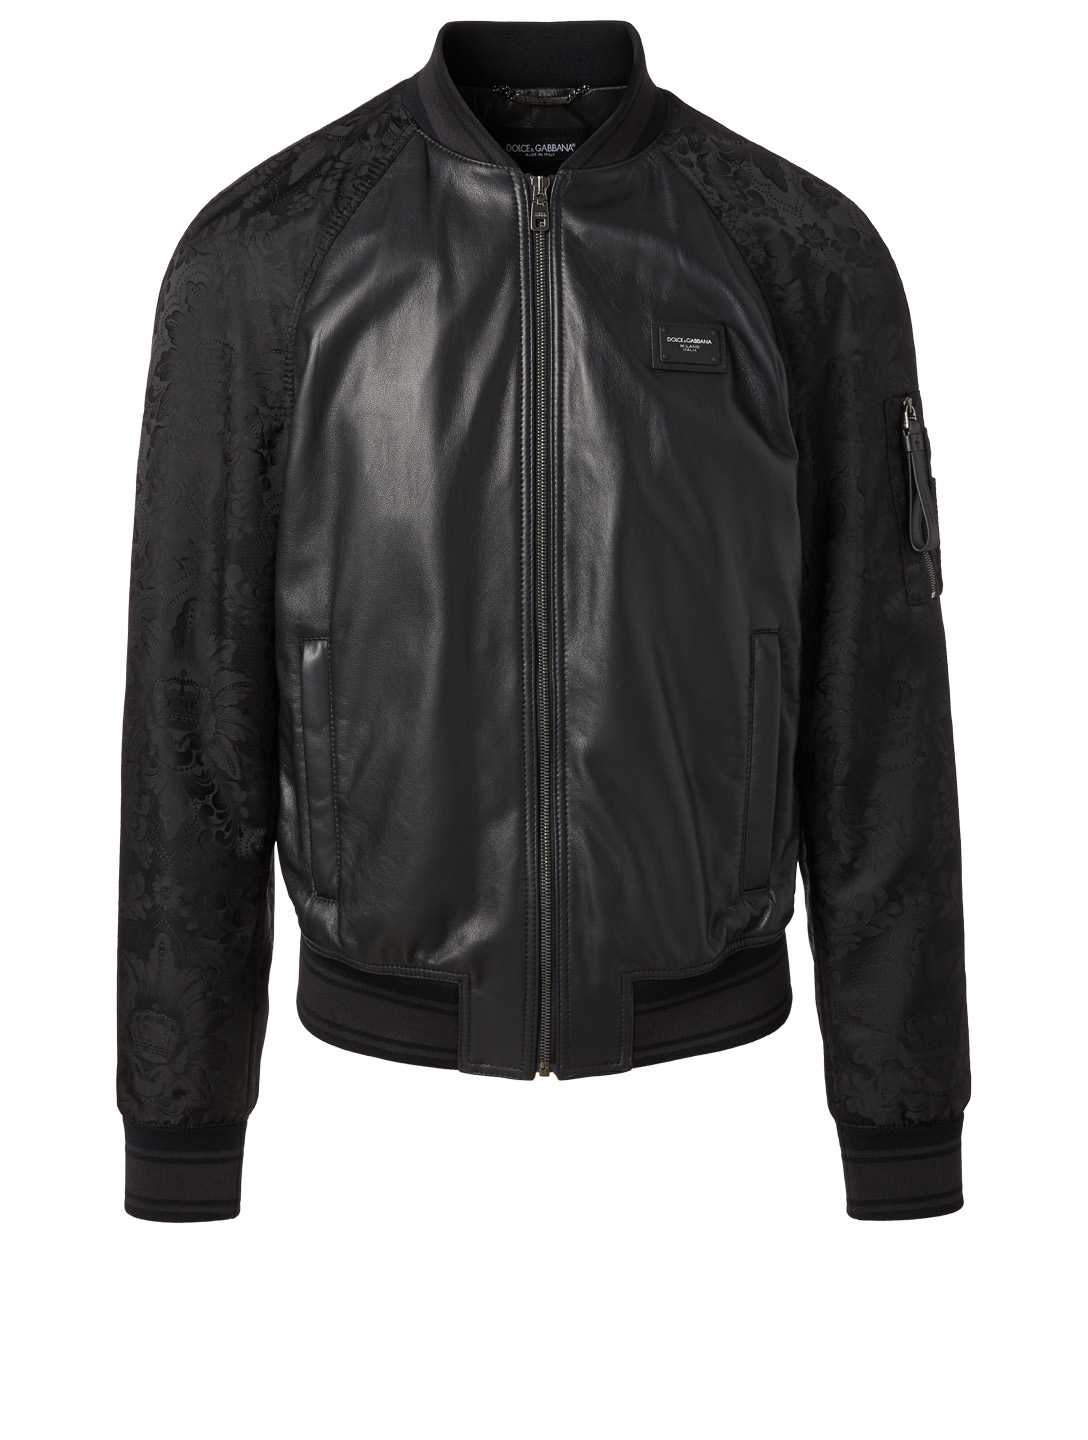 DOLCE & GABBANA Leather Jacket With Logo Plaque Men's Black